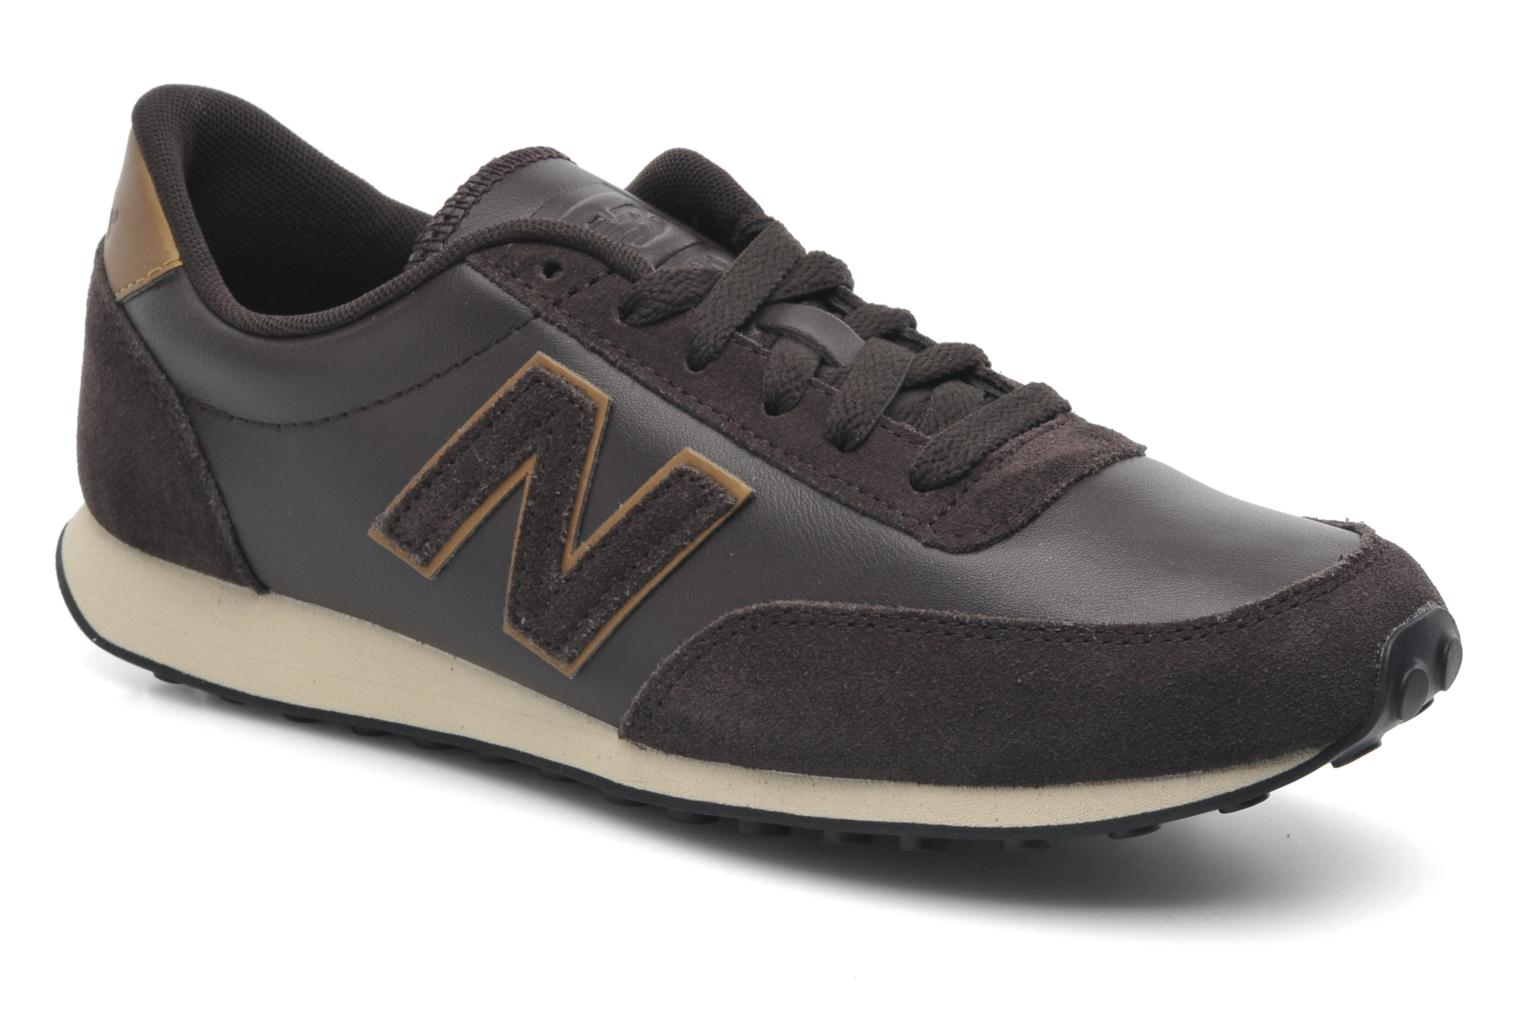 new balance u410 trainers in brown at 218683. Black Bedroom Furniture Sets. Home Design Ideas